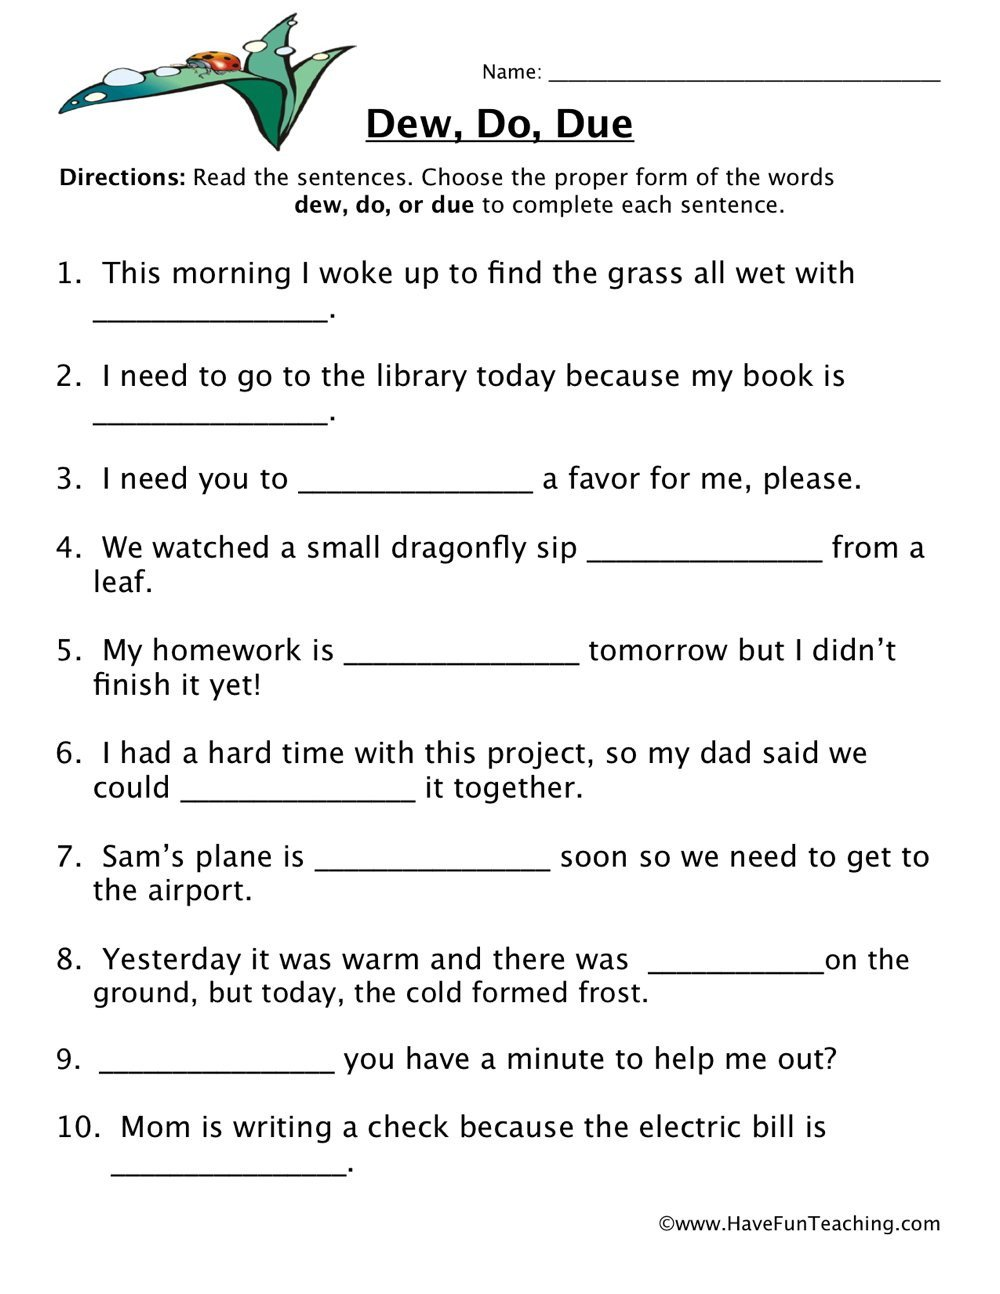 Homophones Worksheets for Grade 2 Dew Do Due Homophones Worksheet